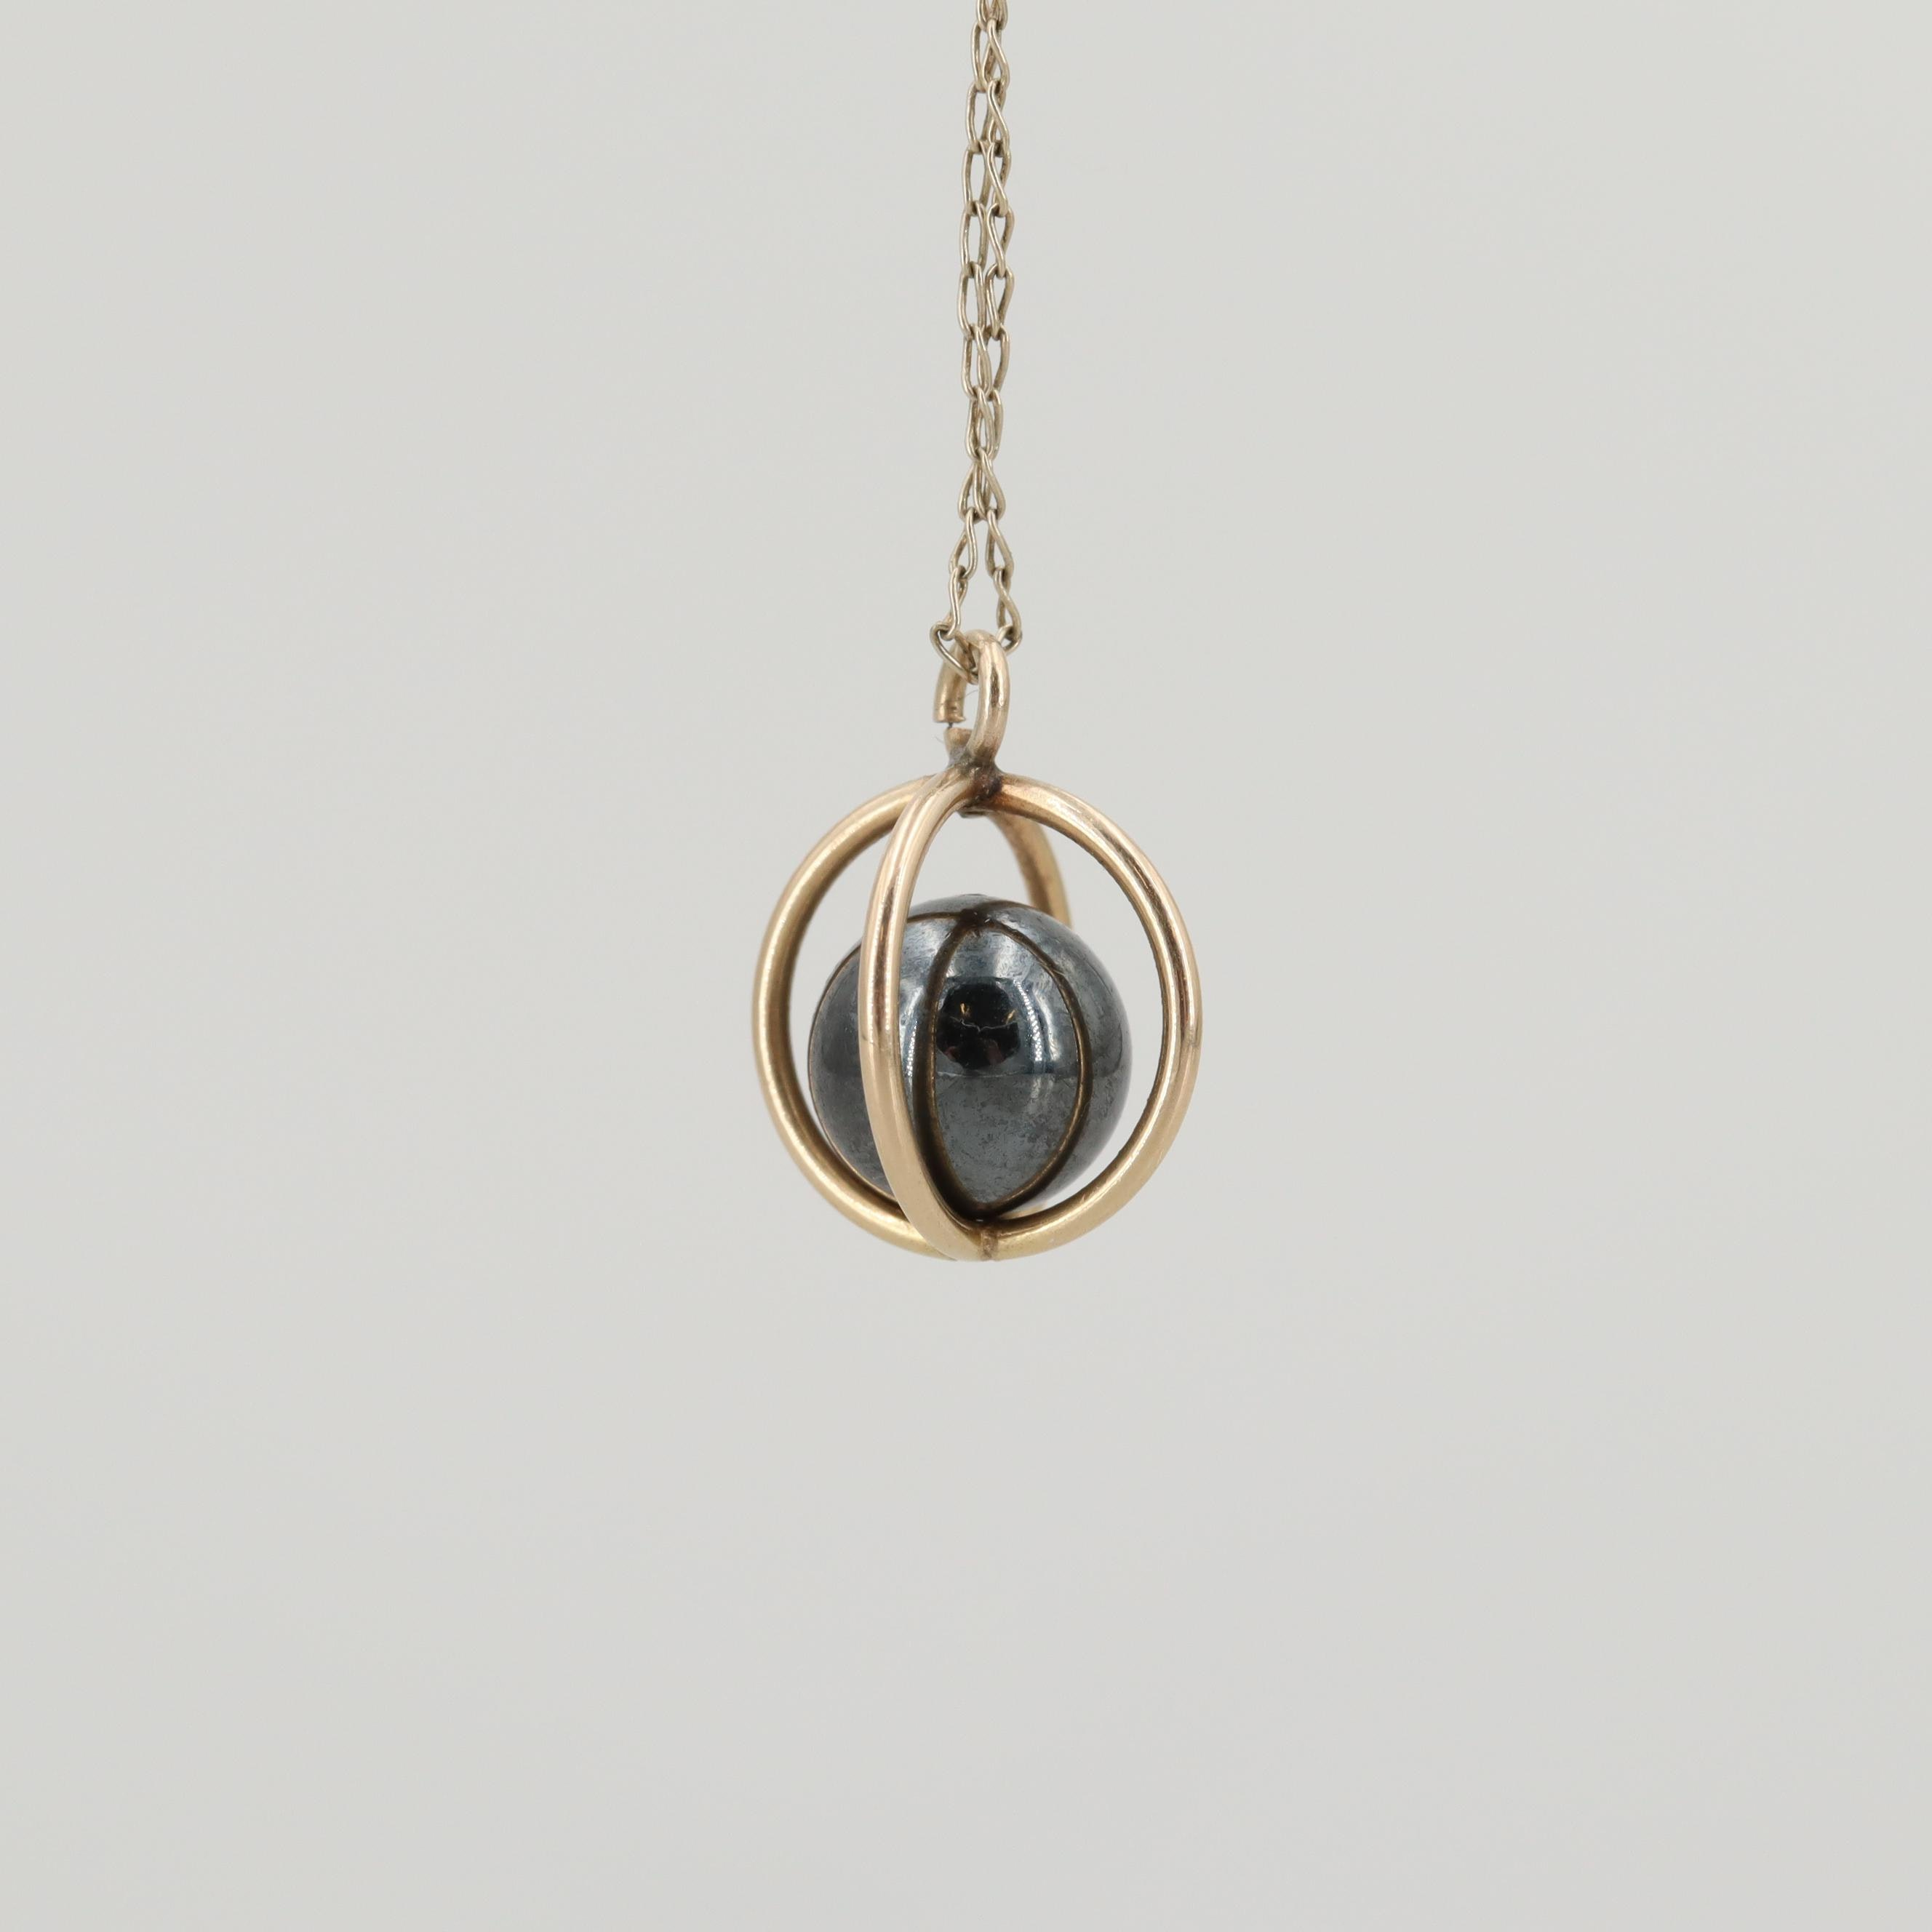 14K Yellow Gold Imitation Hematite Necklace